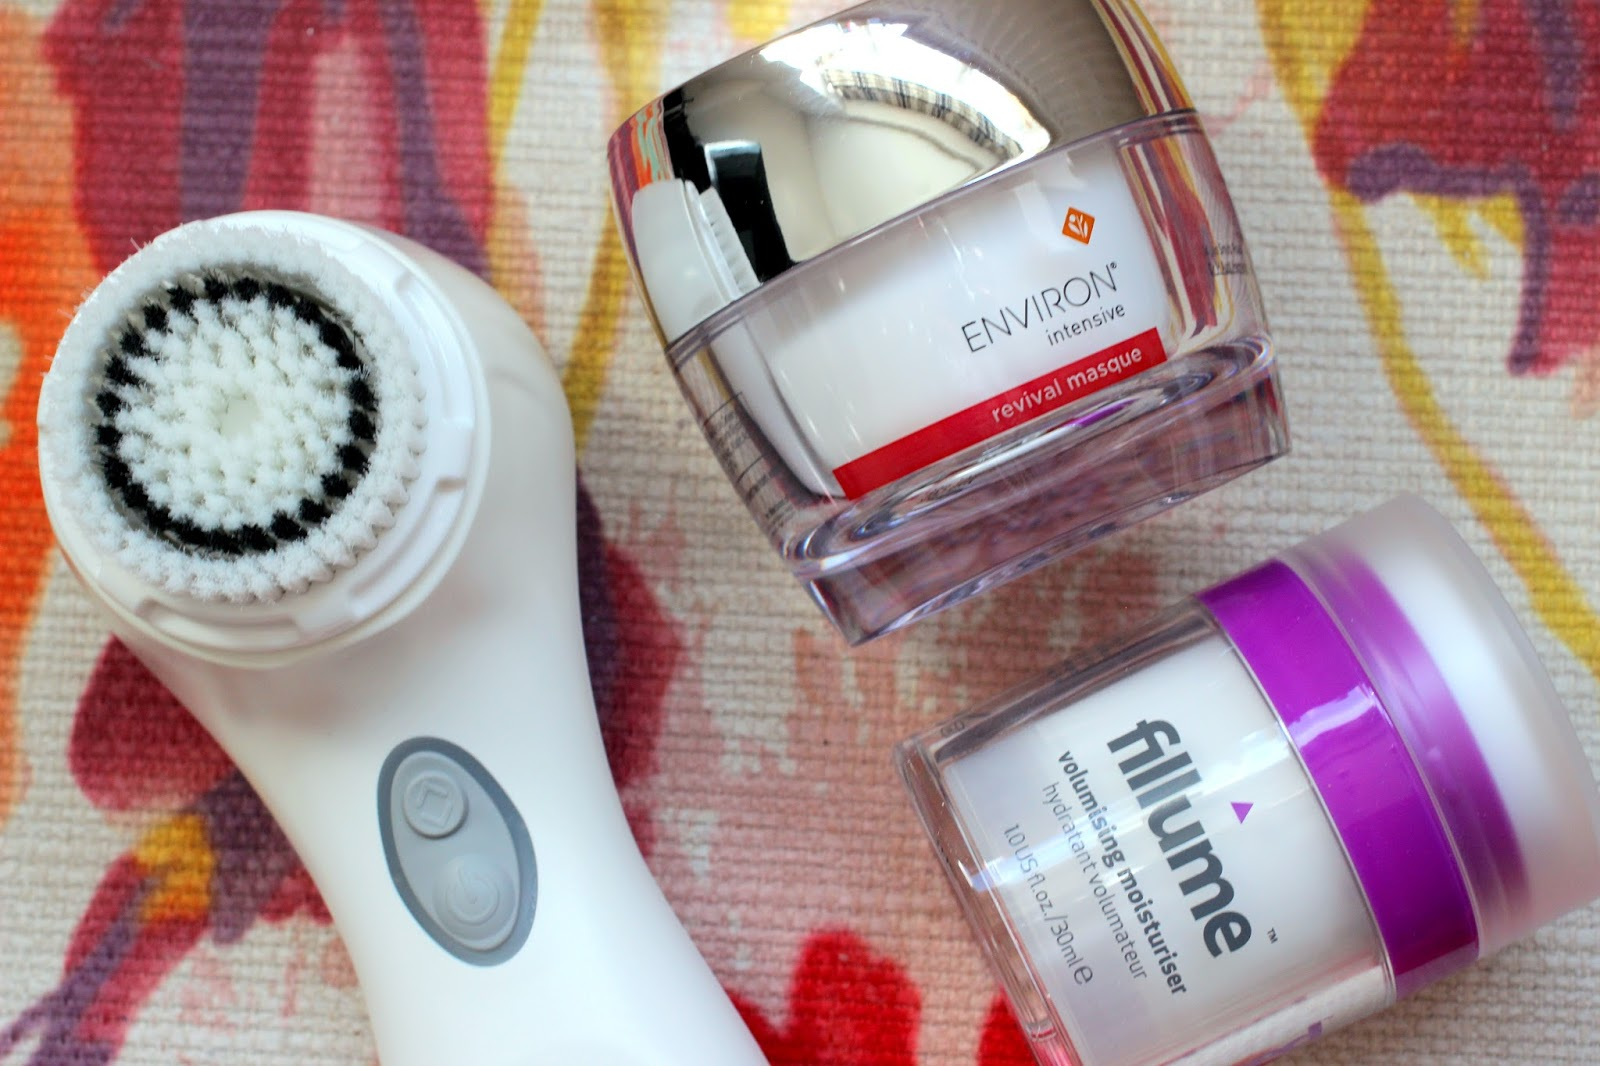 Environ Revival Masque Review